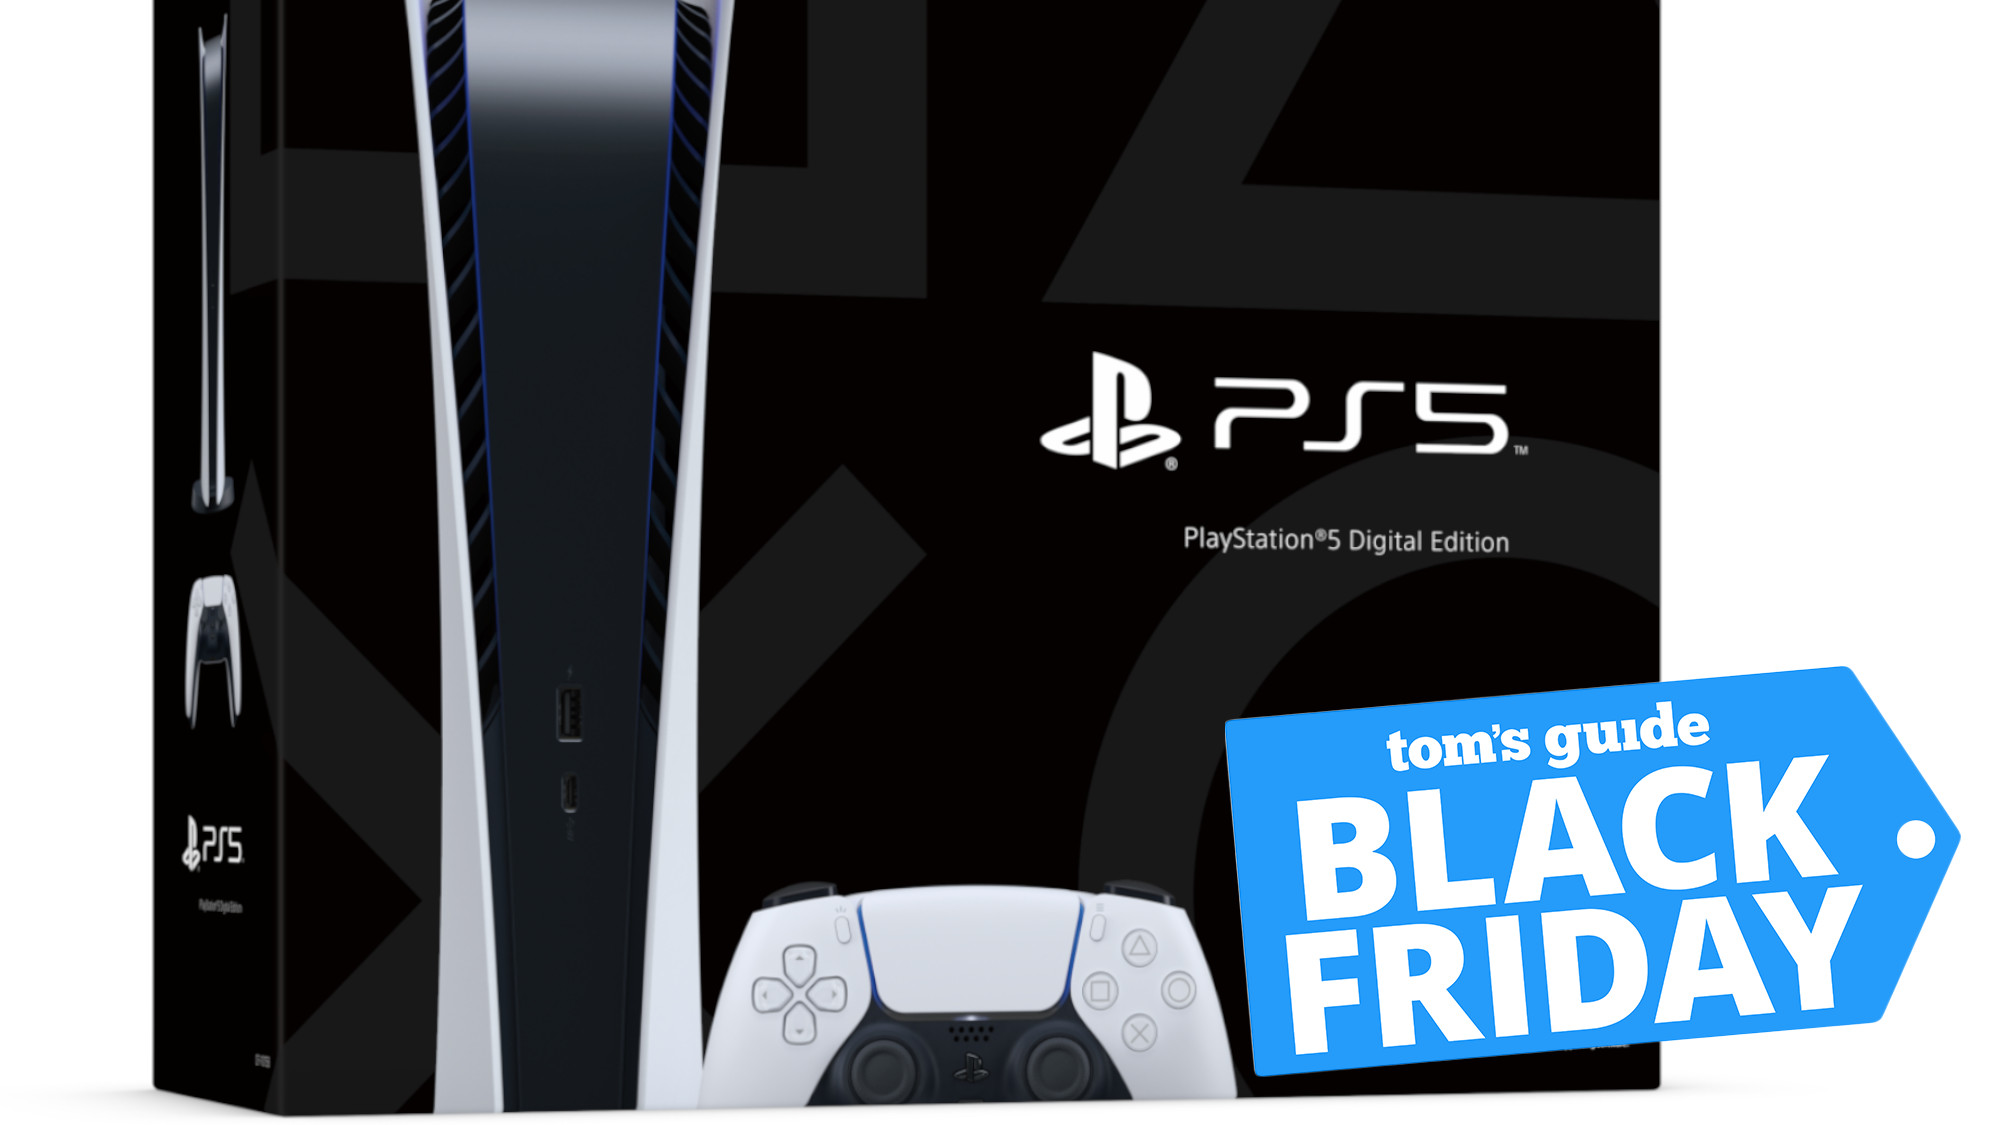 Black Friday Ps5 Deals What To Expect And The Best Early Sales Tom S Guide